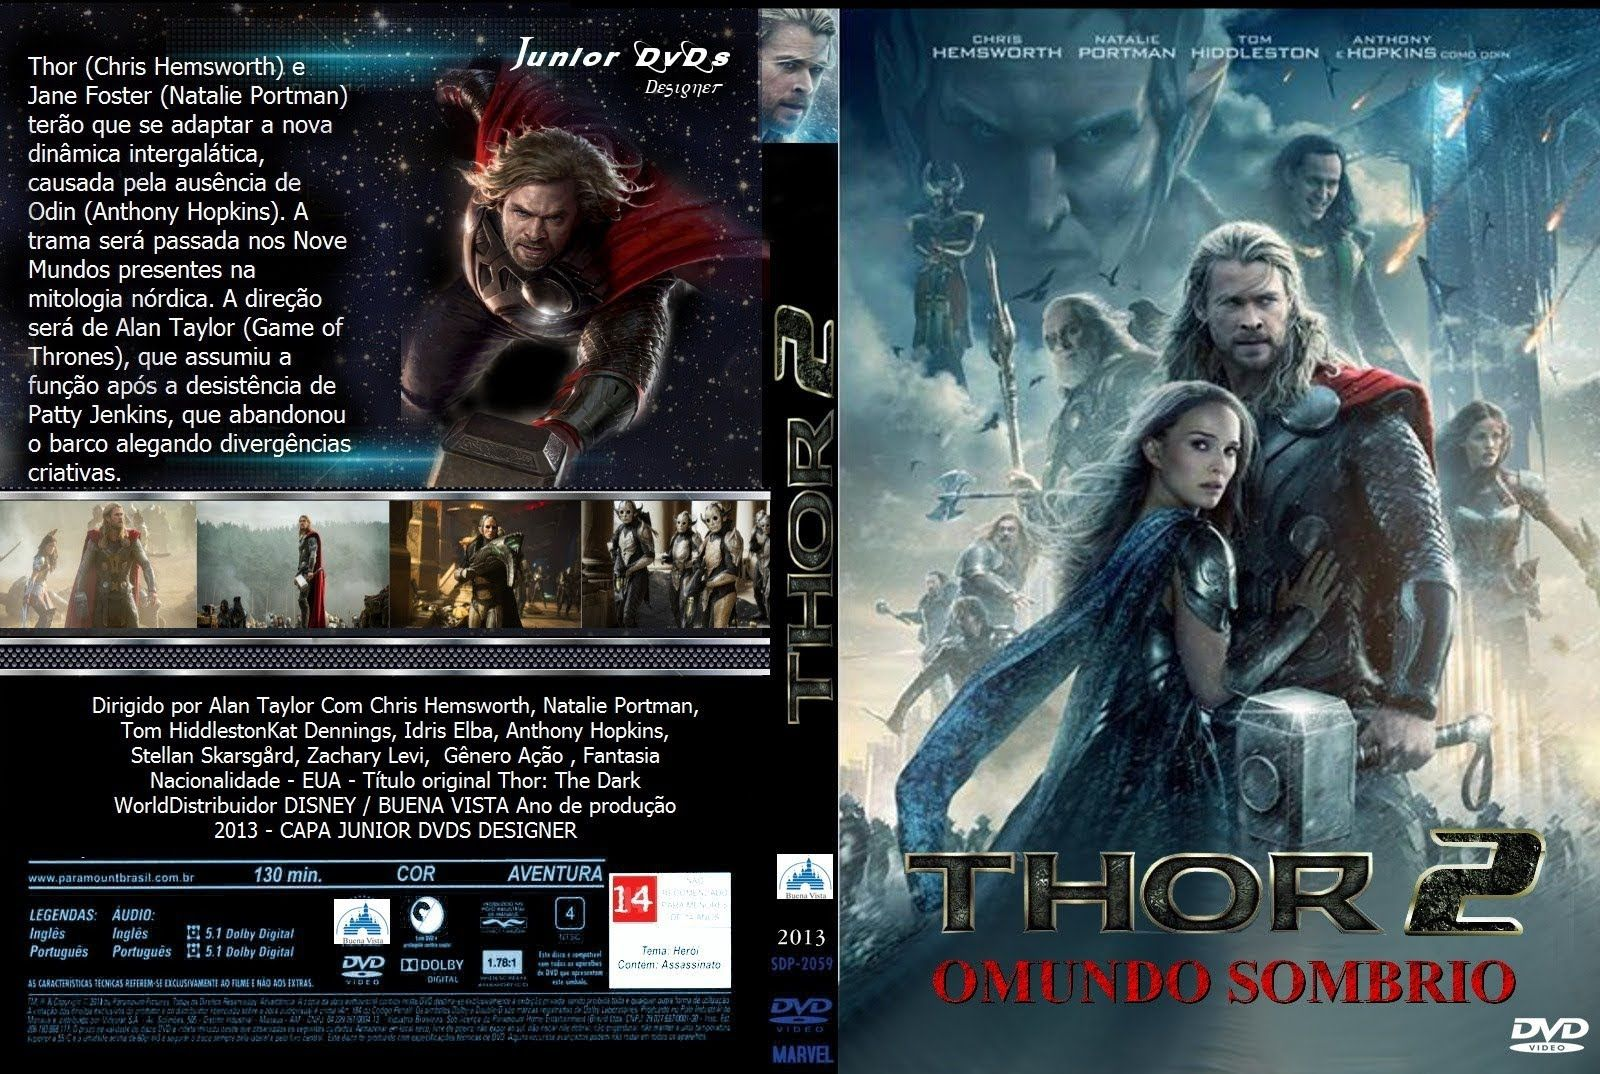 Thor 2 O Mundo Sombrio Filme Completo Dublado Anthony Hopkins Chris Hemsworth Hemsworth